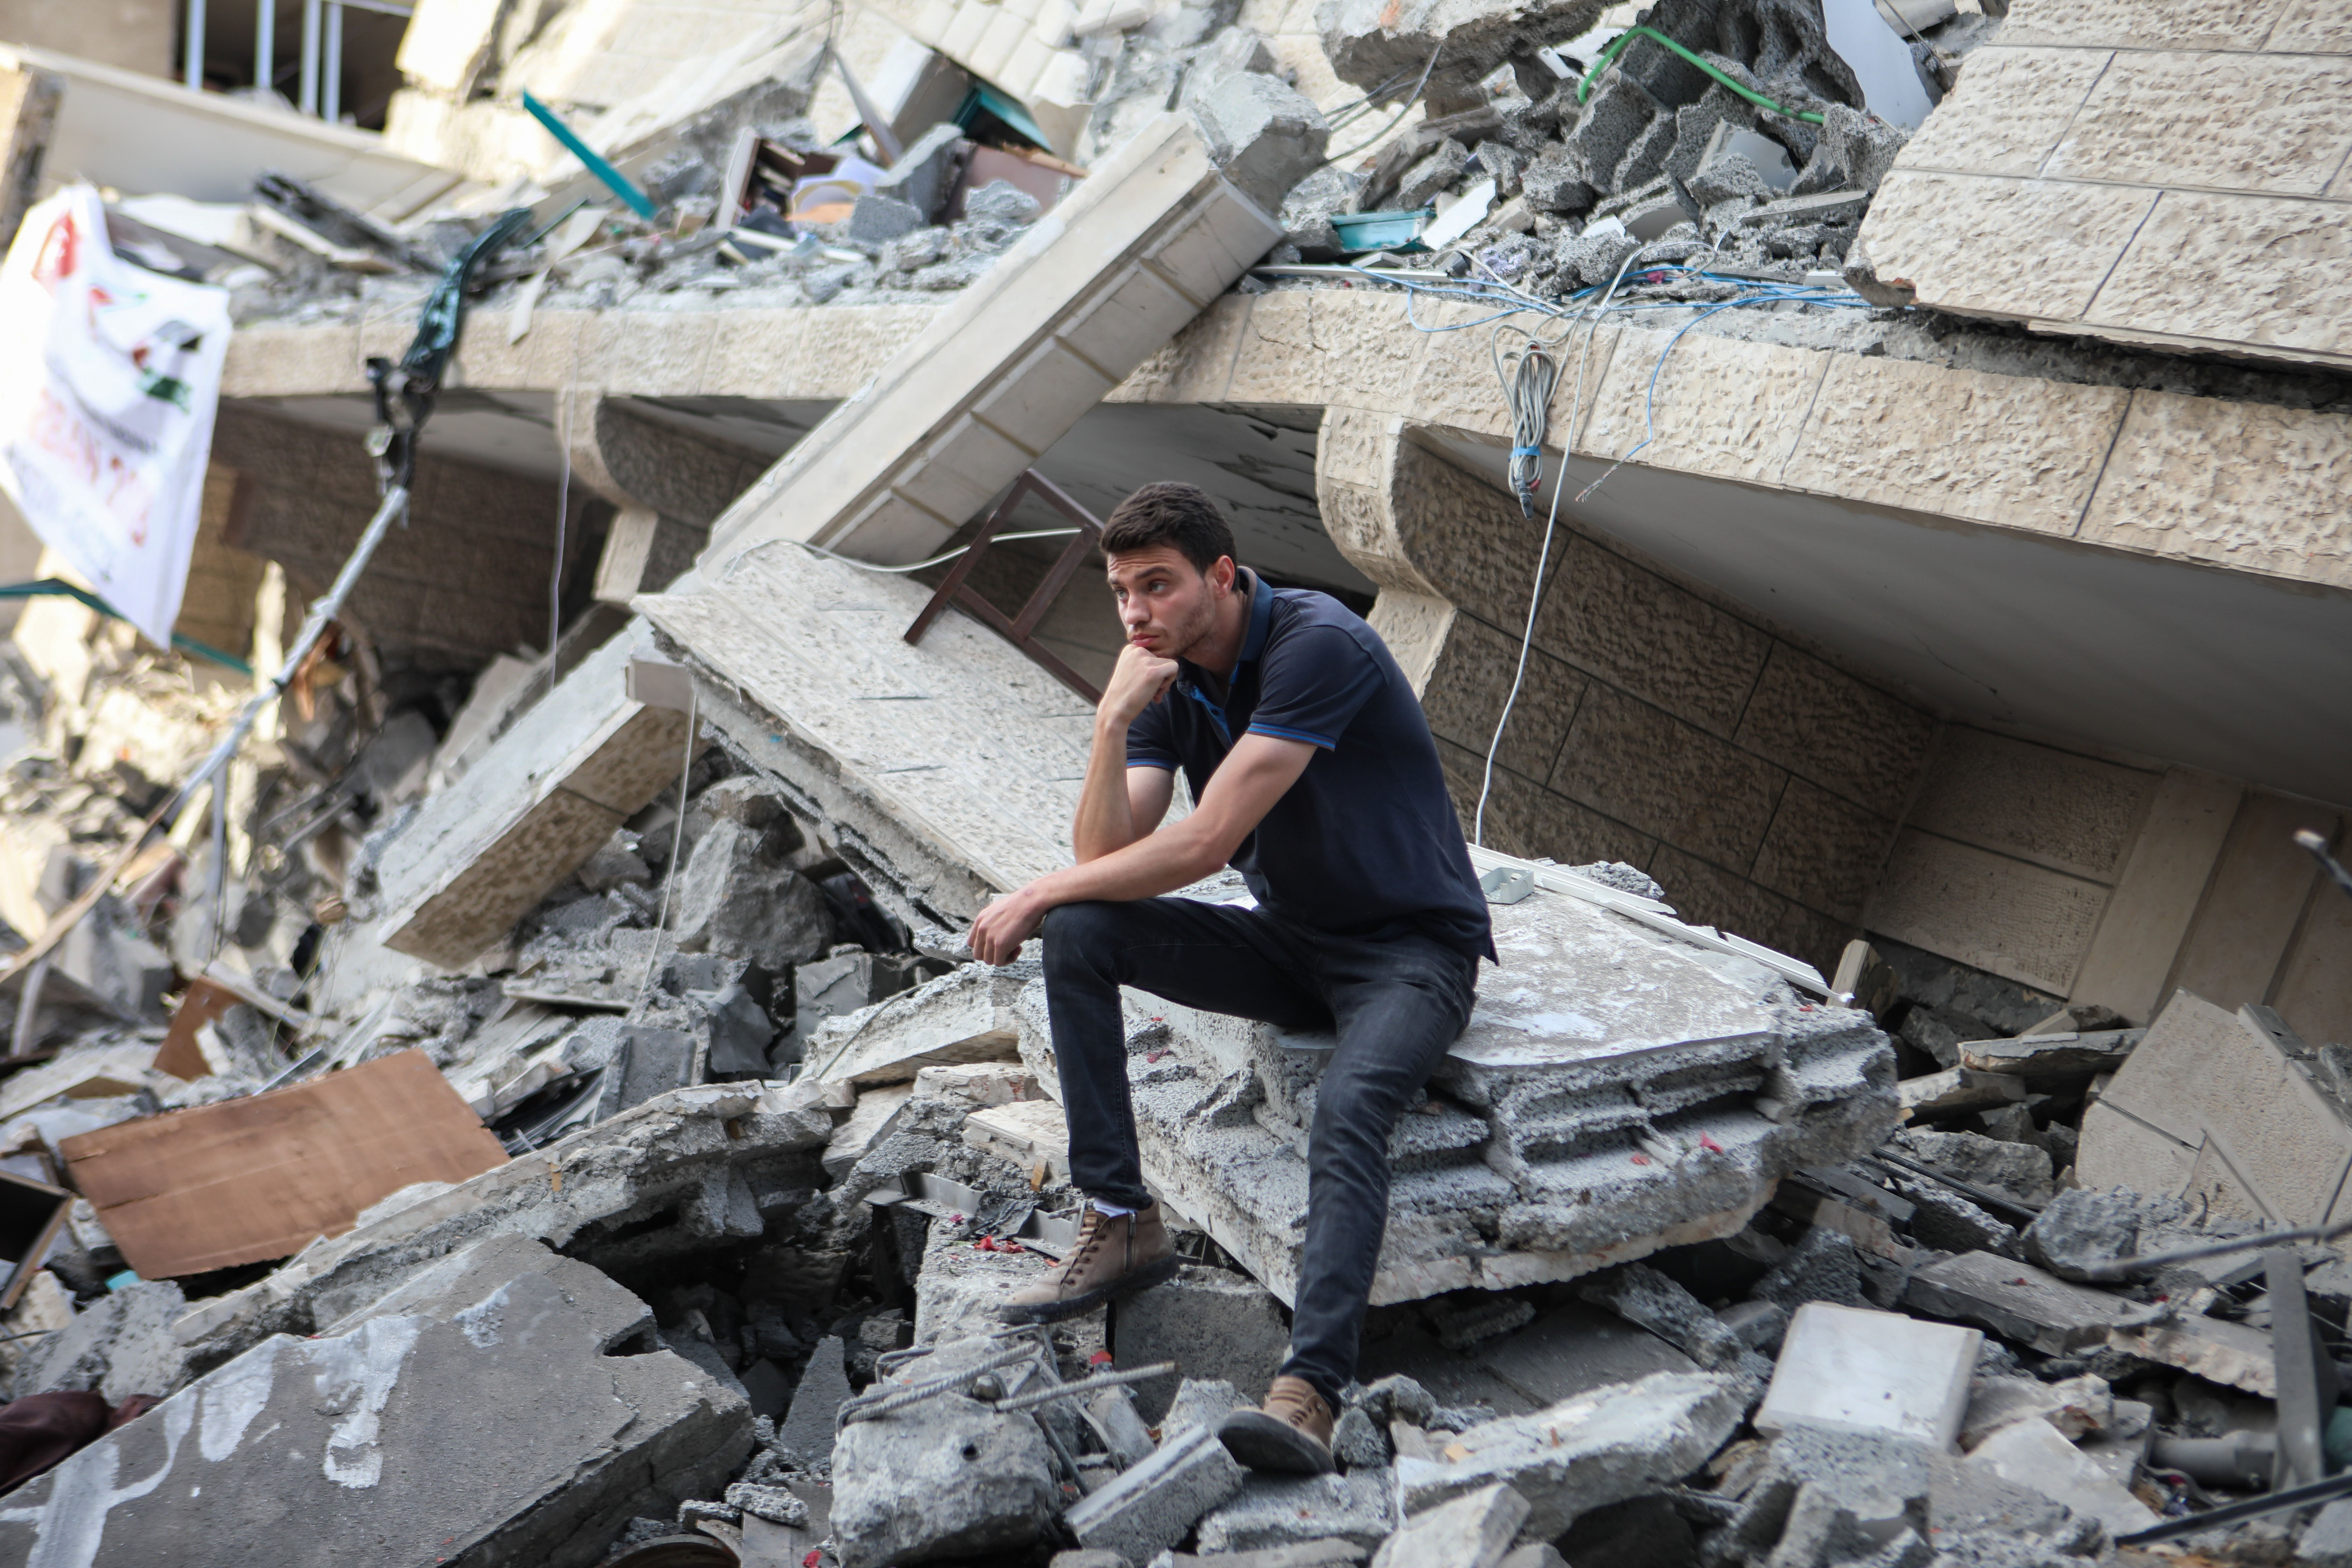 A Palestinian sits on the rubble of a building destroyed by an Israeli air strike in Gaza (MEE/Mohammed al-Hajjar)